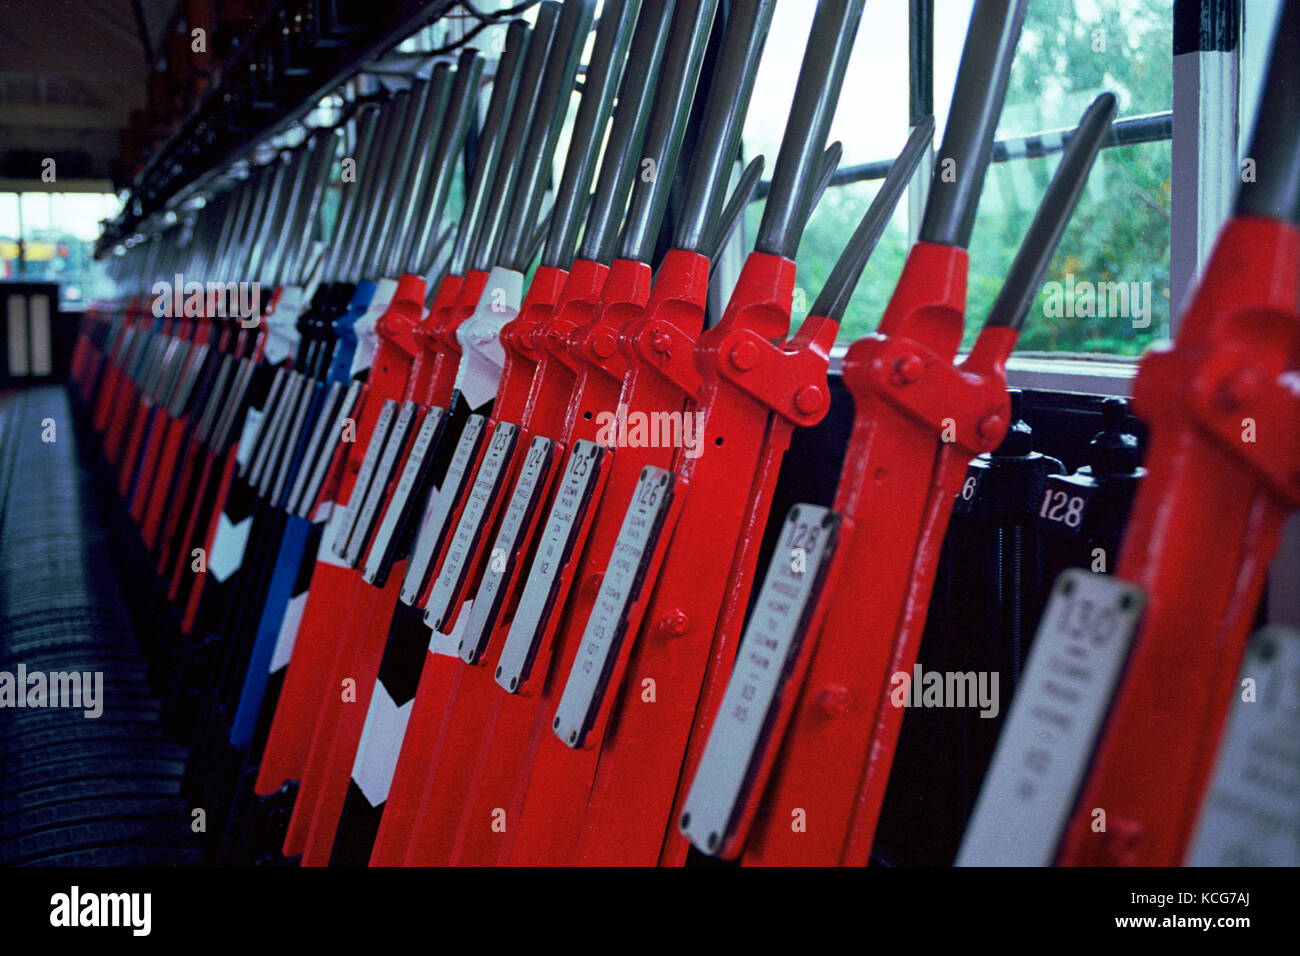 The signal Levers of Exeter West Signal Box, Crew Heritage Centre - Stock Image